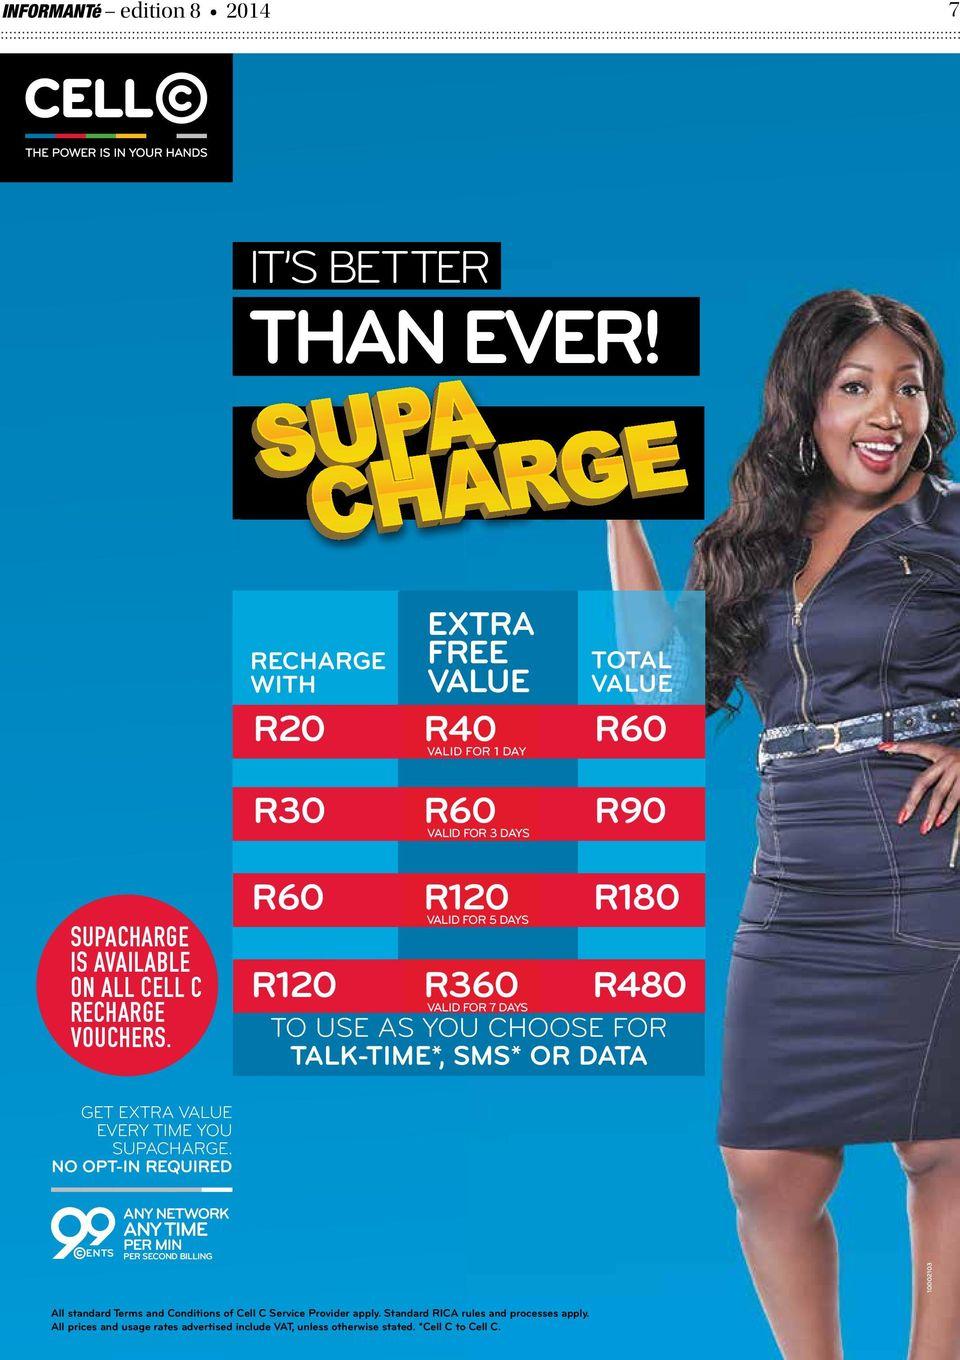 R60 R120 R120 VALID FOR 5 DAYS R360 VALID FOR 7 DAYS R180 R480 TO USE AS YOU CHOOSE FOR TALK-TIME*, SMS* OR DATA GET EXTRA VALUE EVERY TIME YOU SUPACHARGE.